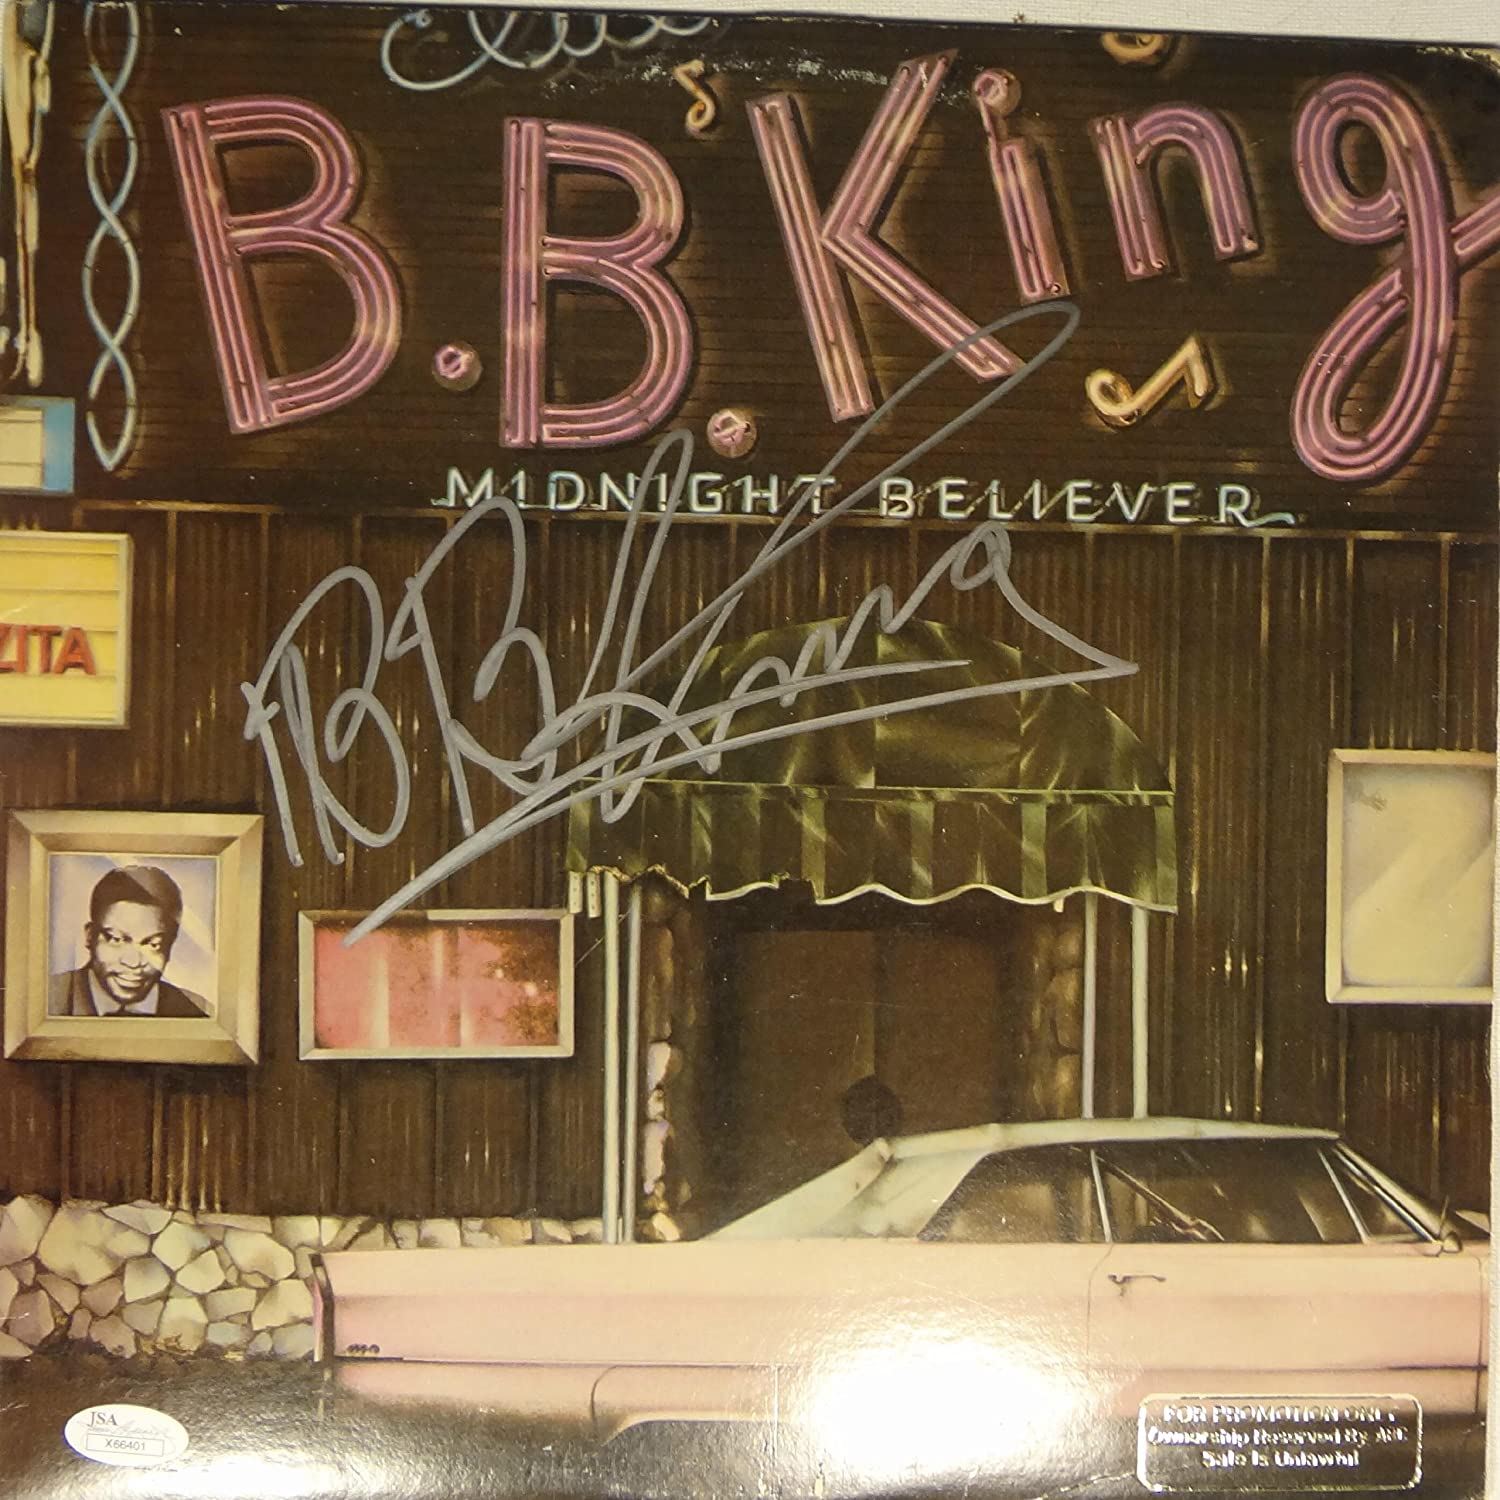 Signed B.B. King Autographed 1978 Midnight Believer Lp Album Jsa Loa # X66401 snsd yoona autographed signed original photo 4 6 inches collection new korean freeshipping 03 2017 01